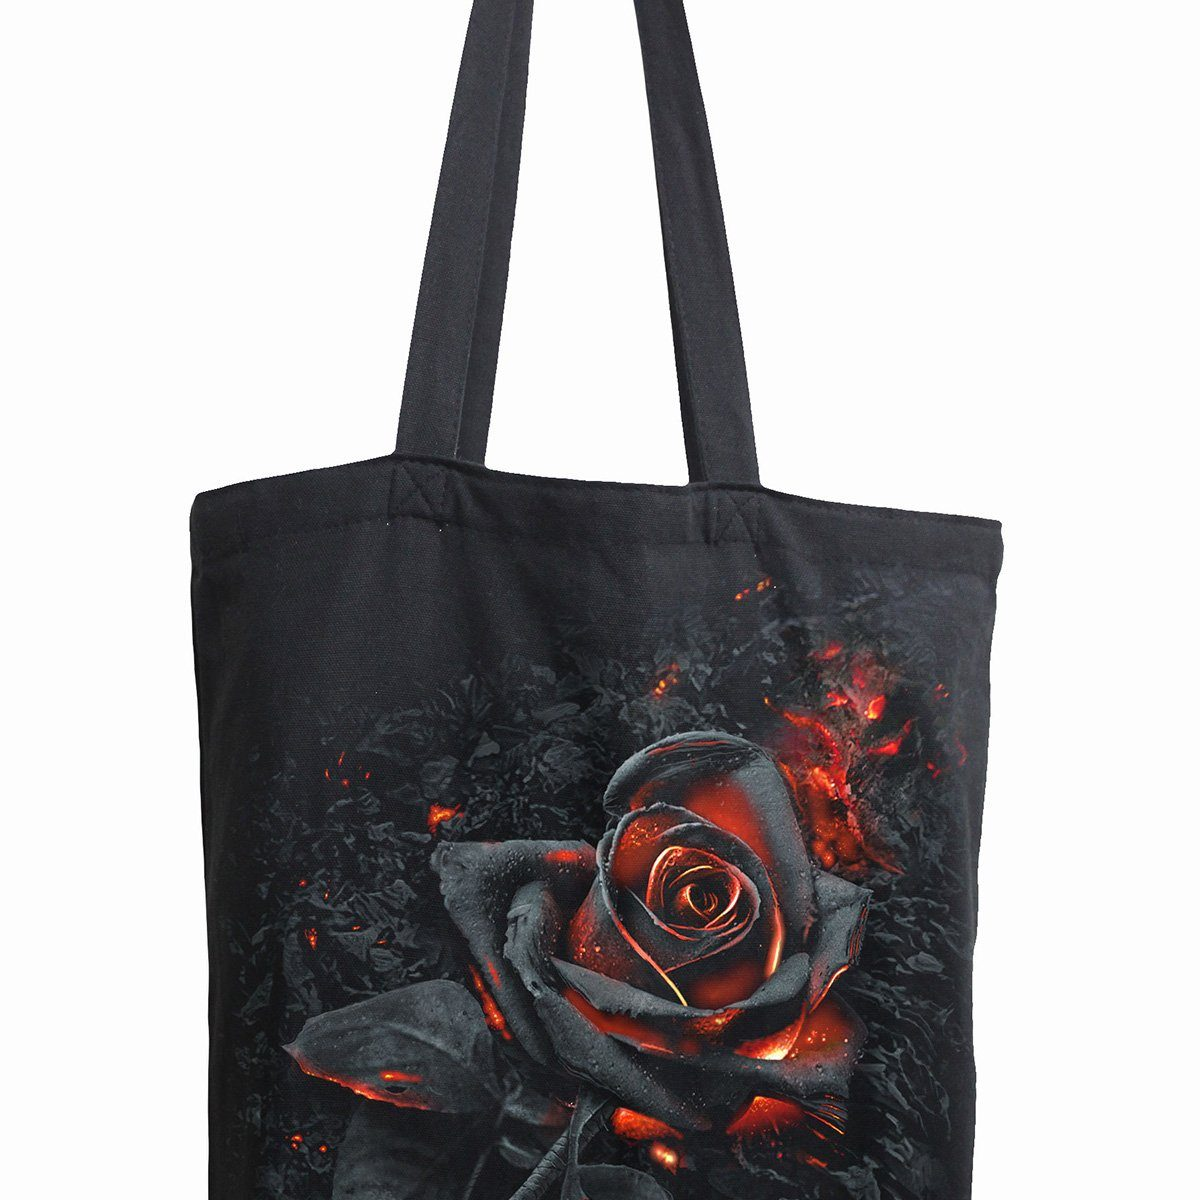 Burning Rose Cloth Tote Bag - Rebels Depot